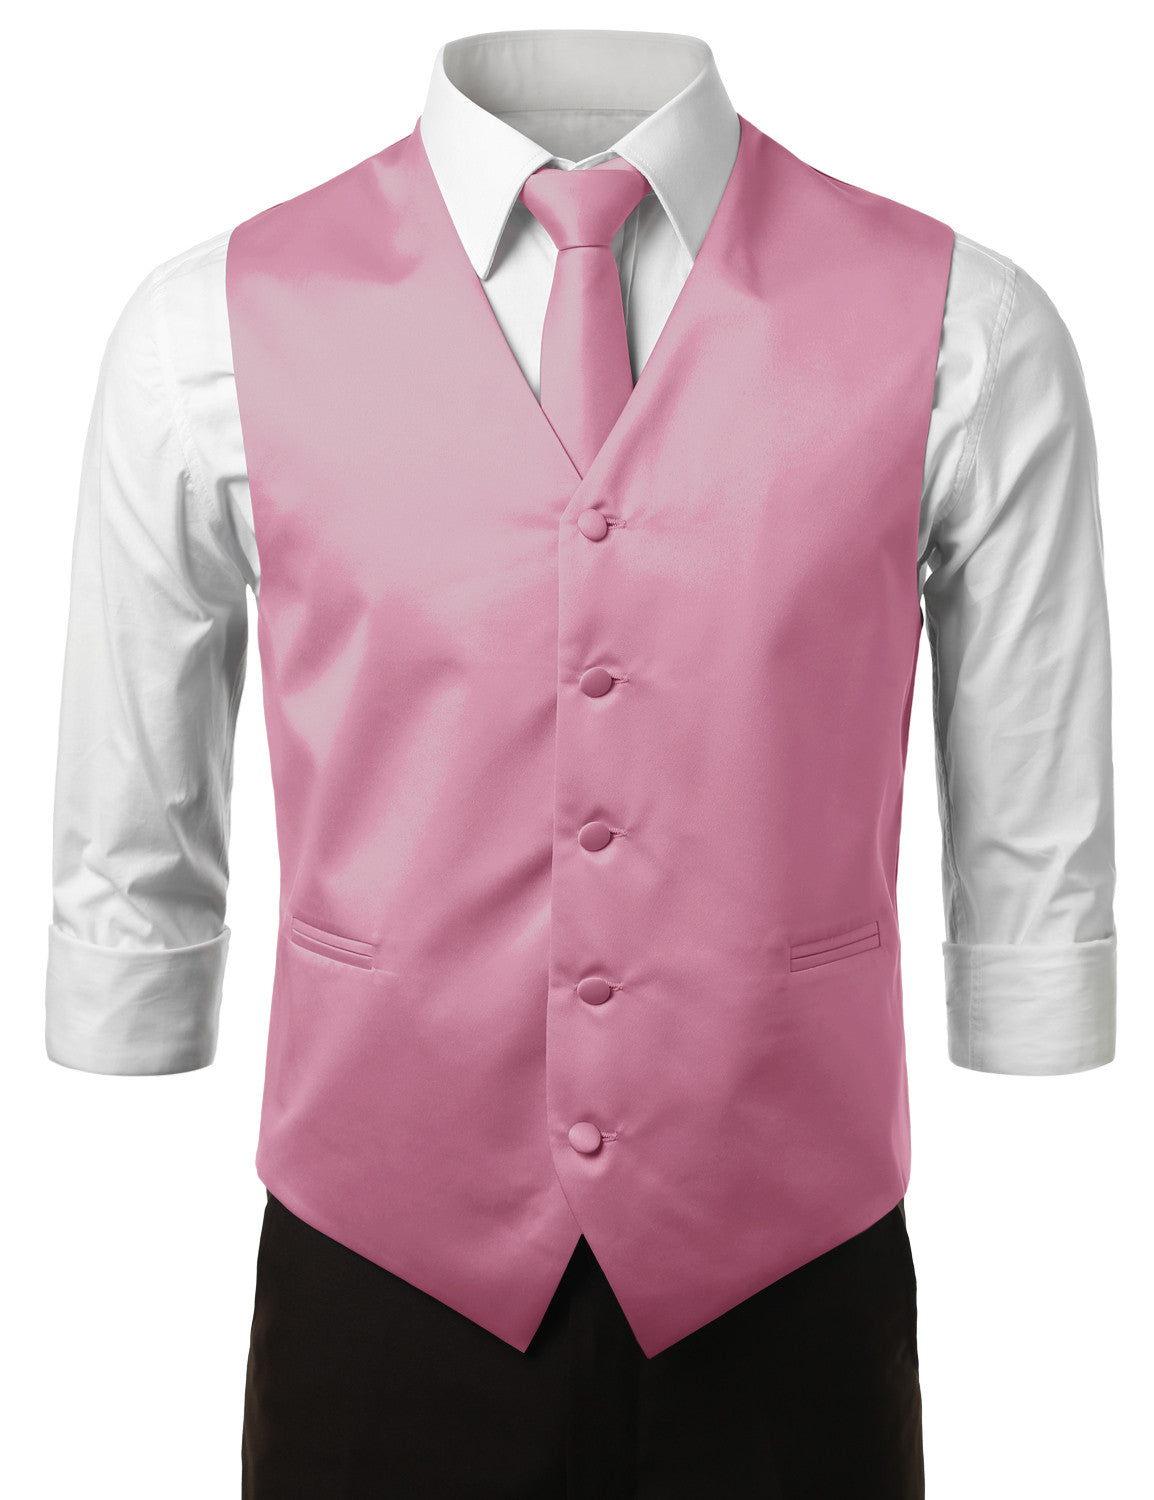 PINK13 Formal Tuxedo 3 Piece Vest Set (Vest, Necktie, Pocket Square)- MONDAYSUIT